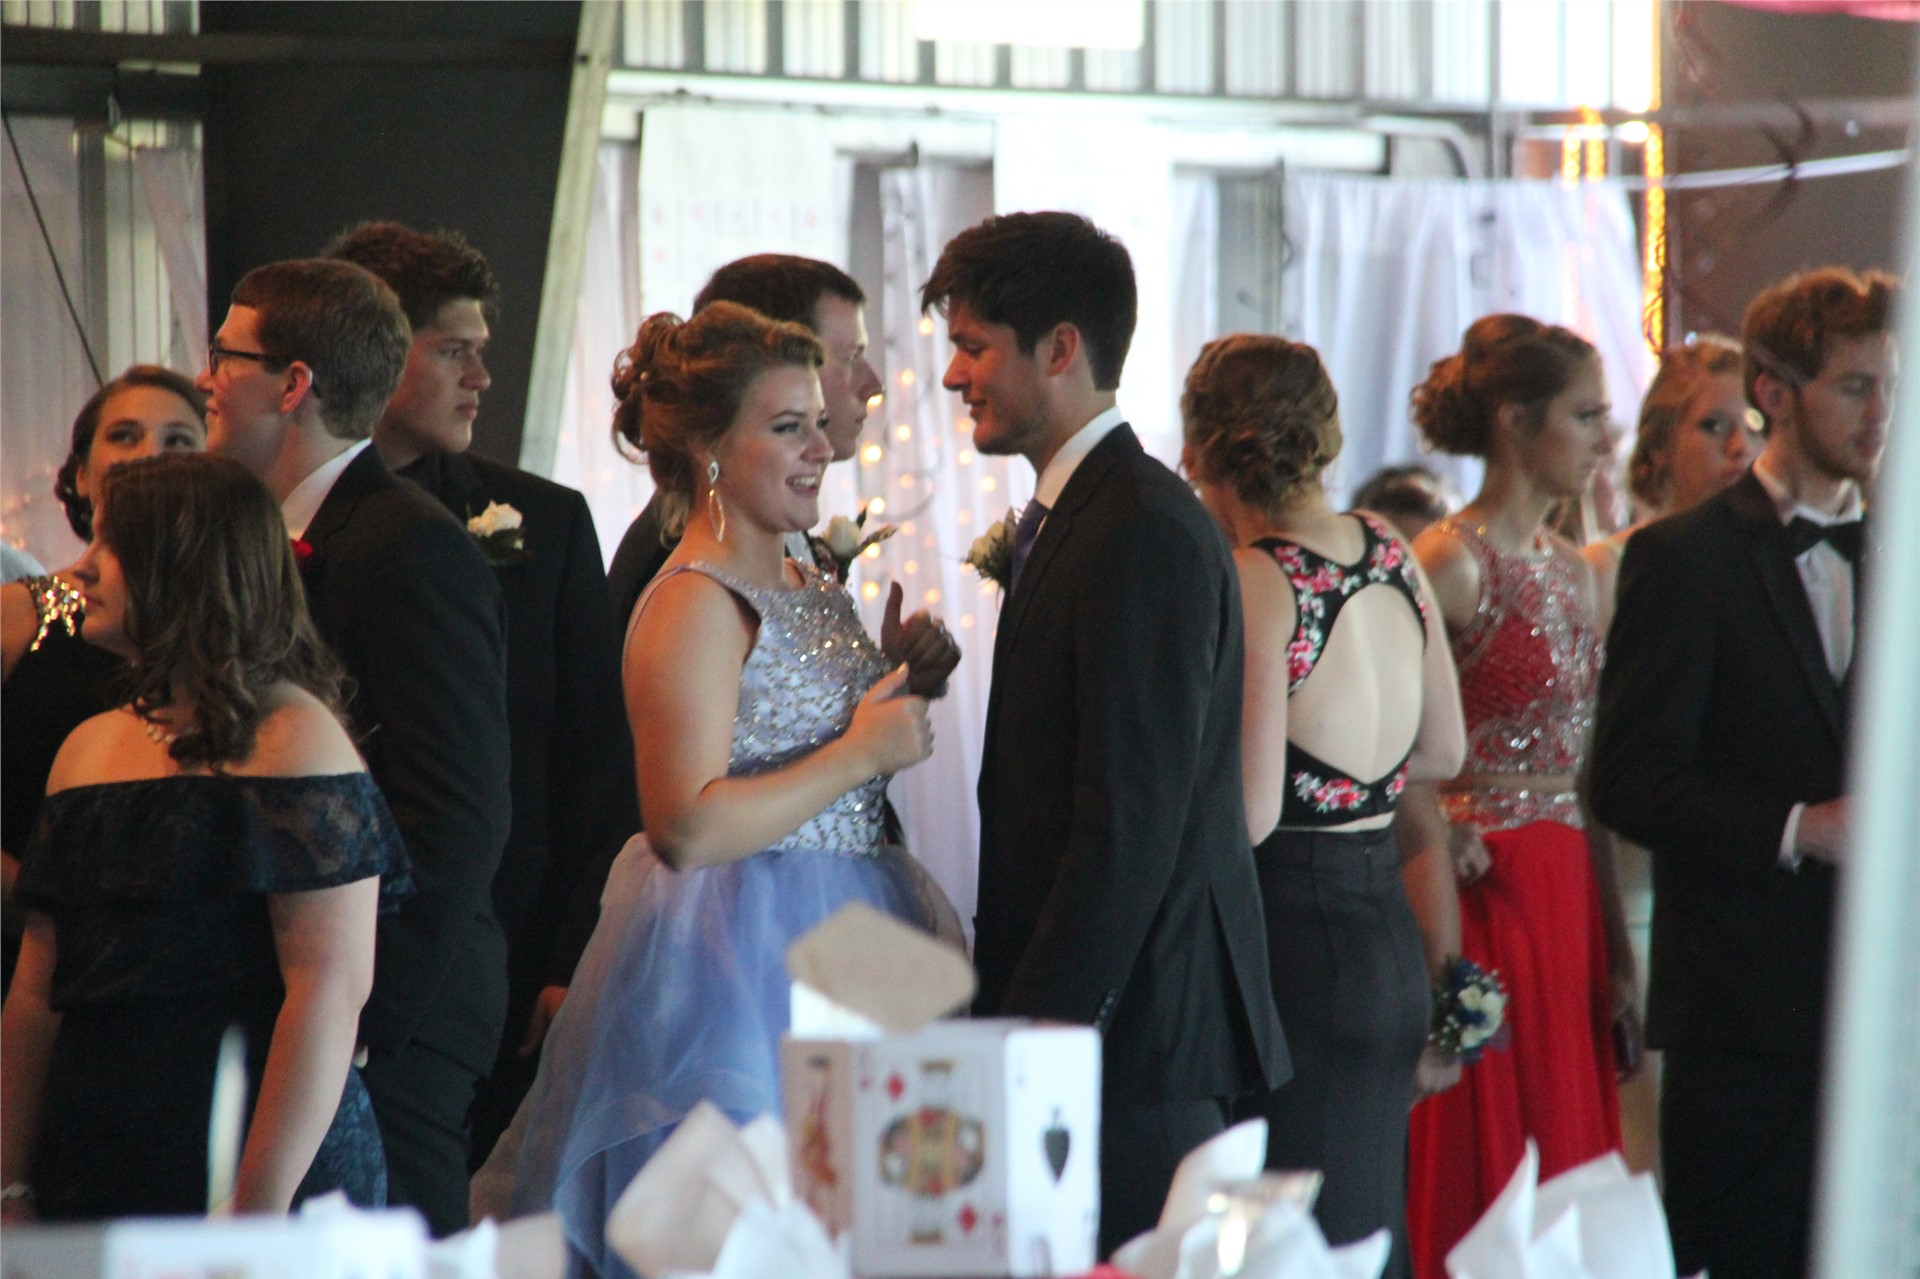 distance shot of group of students talking at prom event